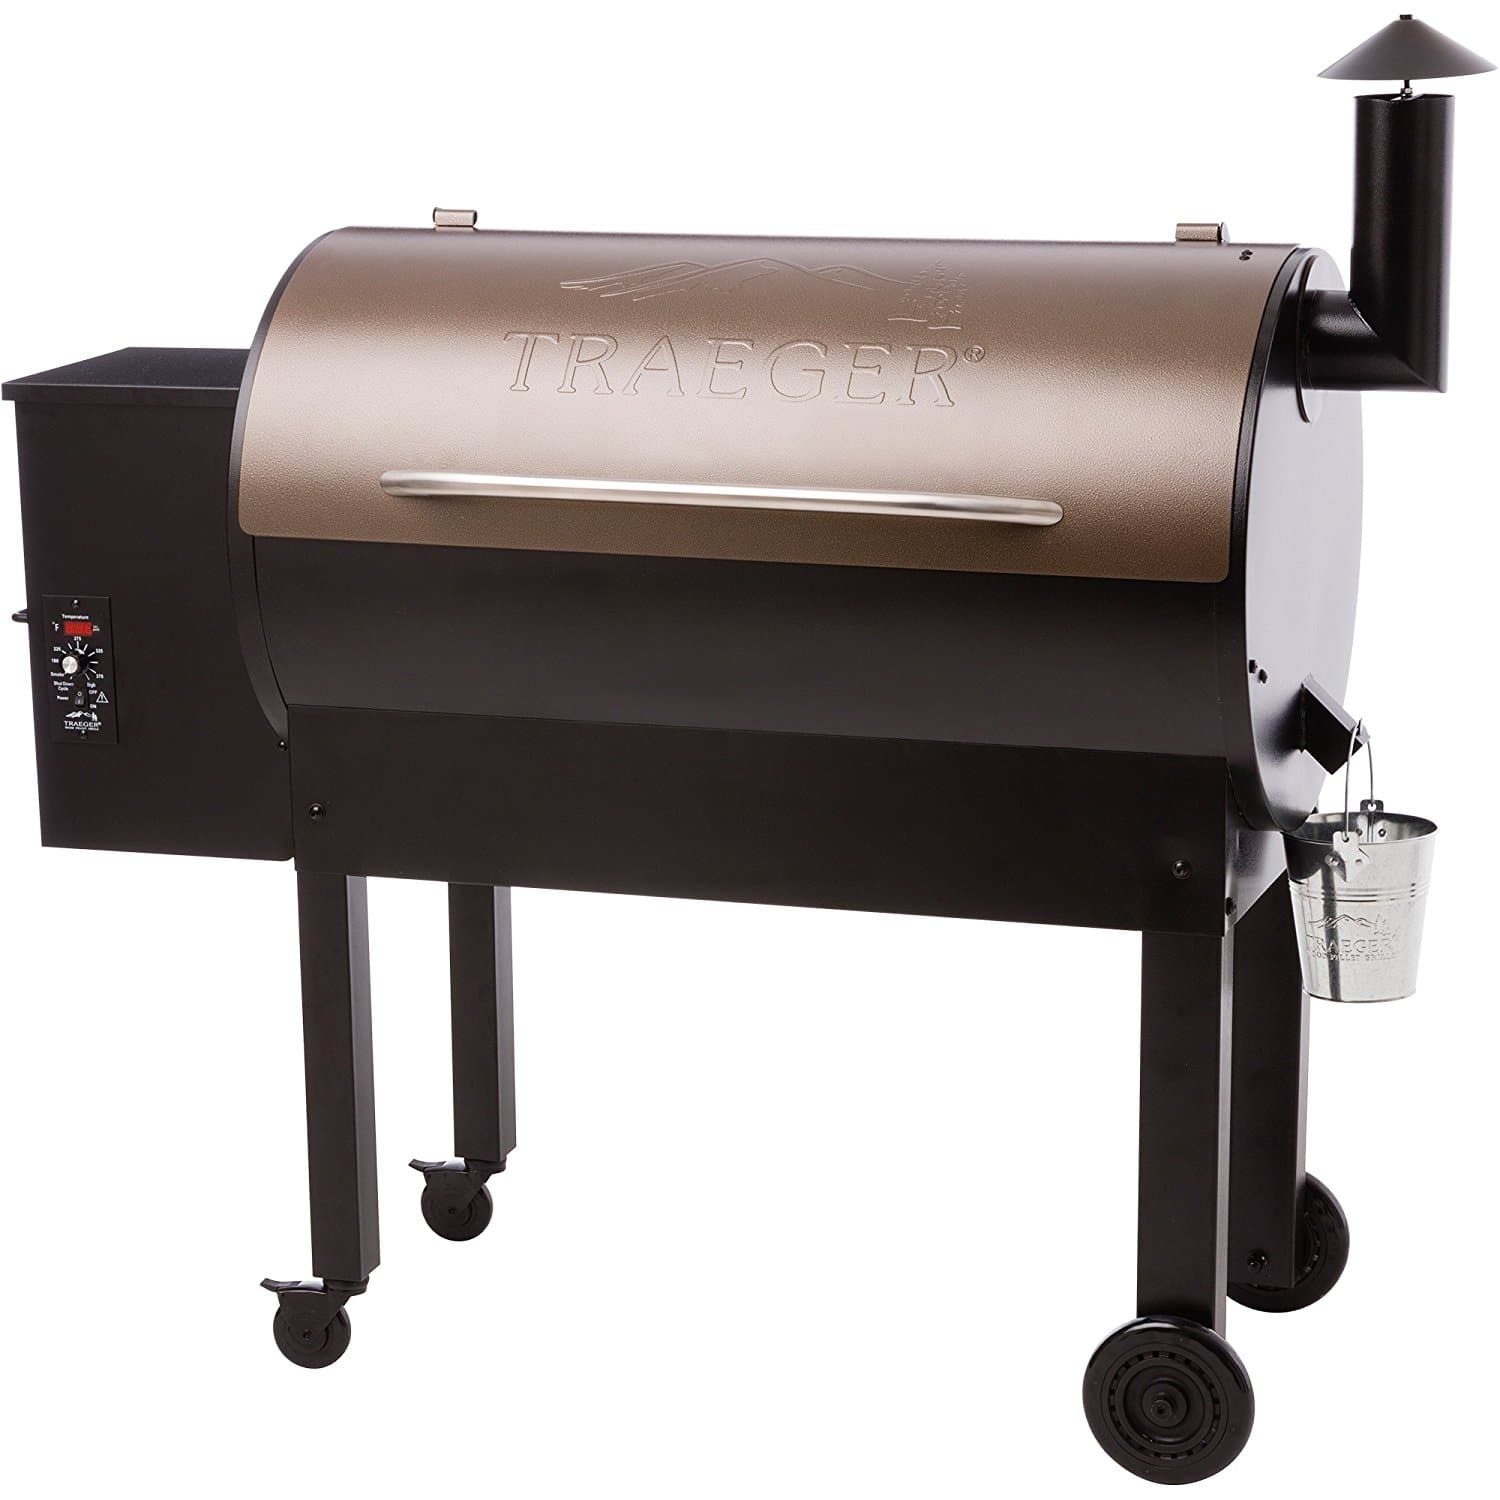 Traeger Texas Elite 34 Grill